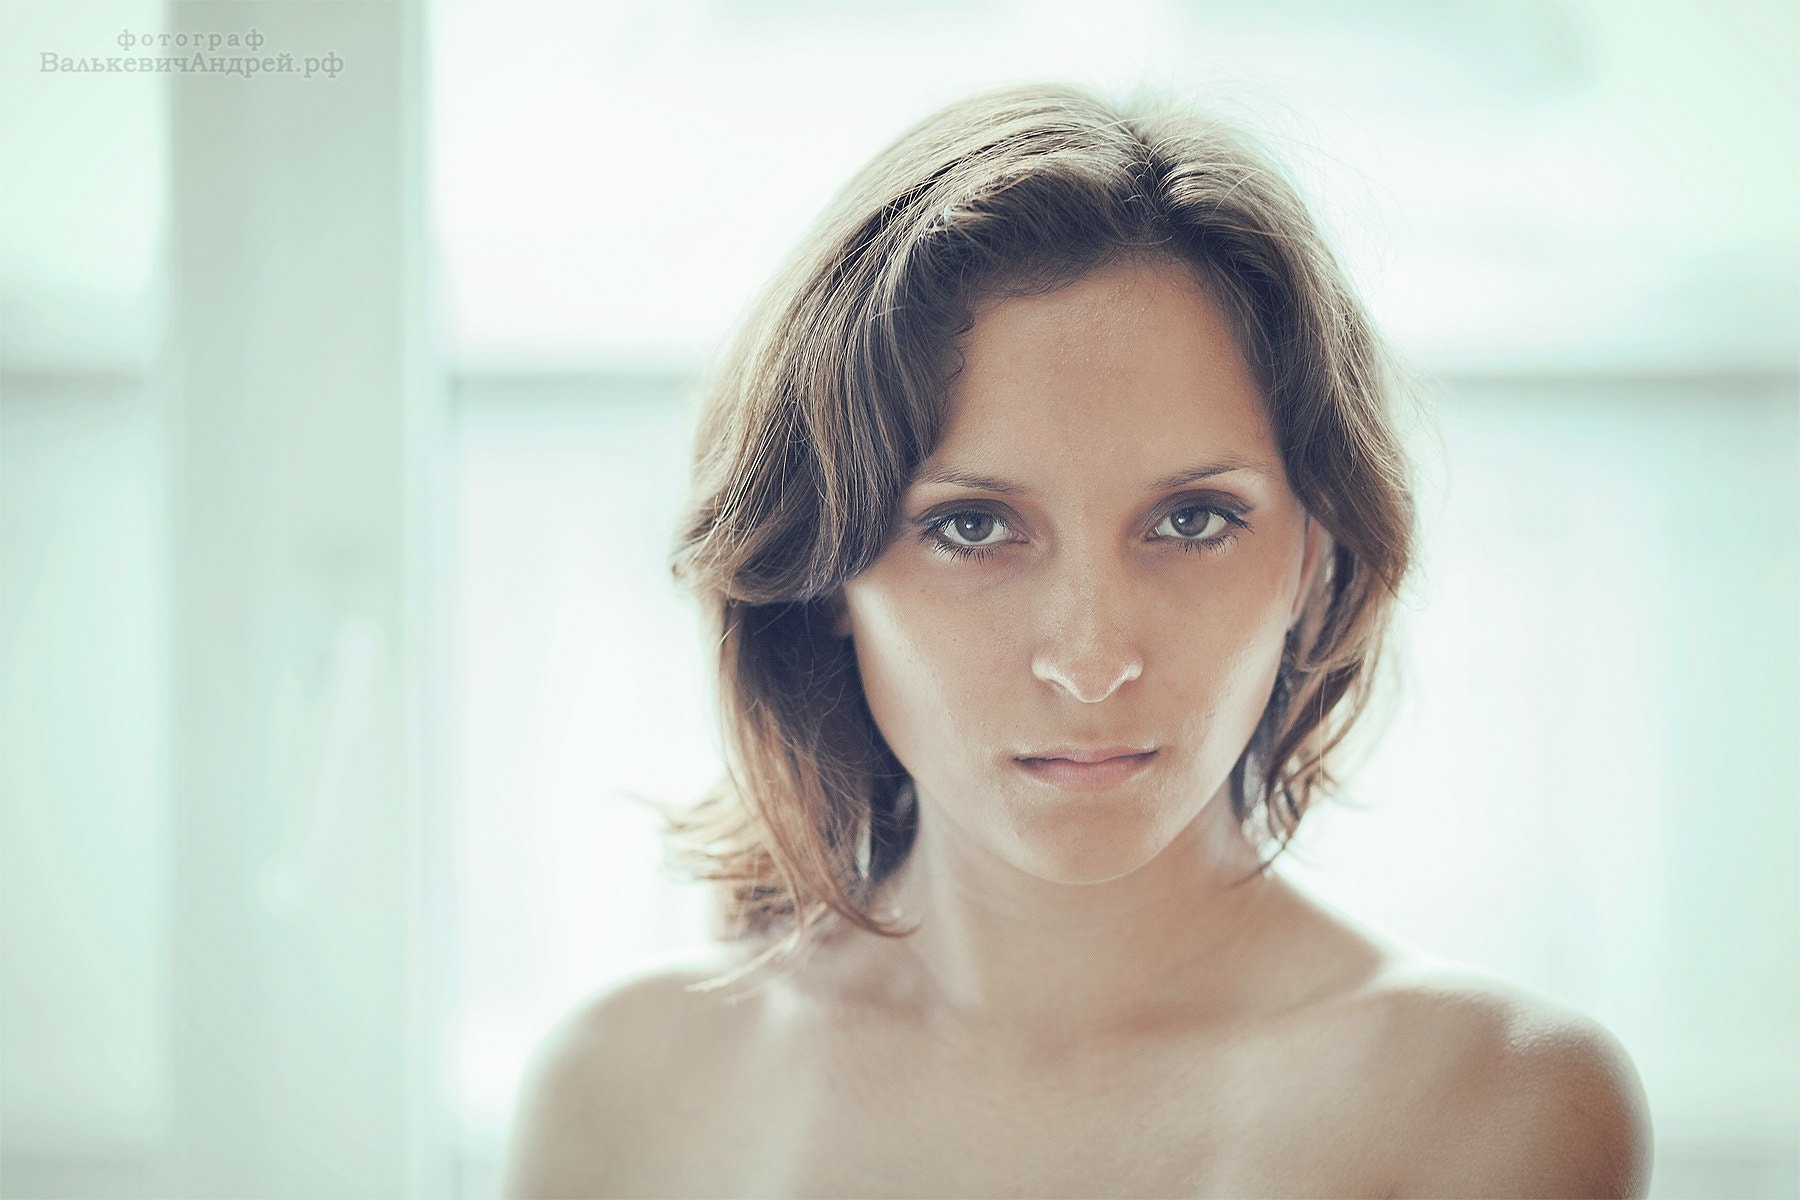 Photograph *** by Andreu Valkevich on 500px